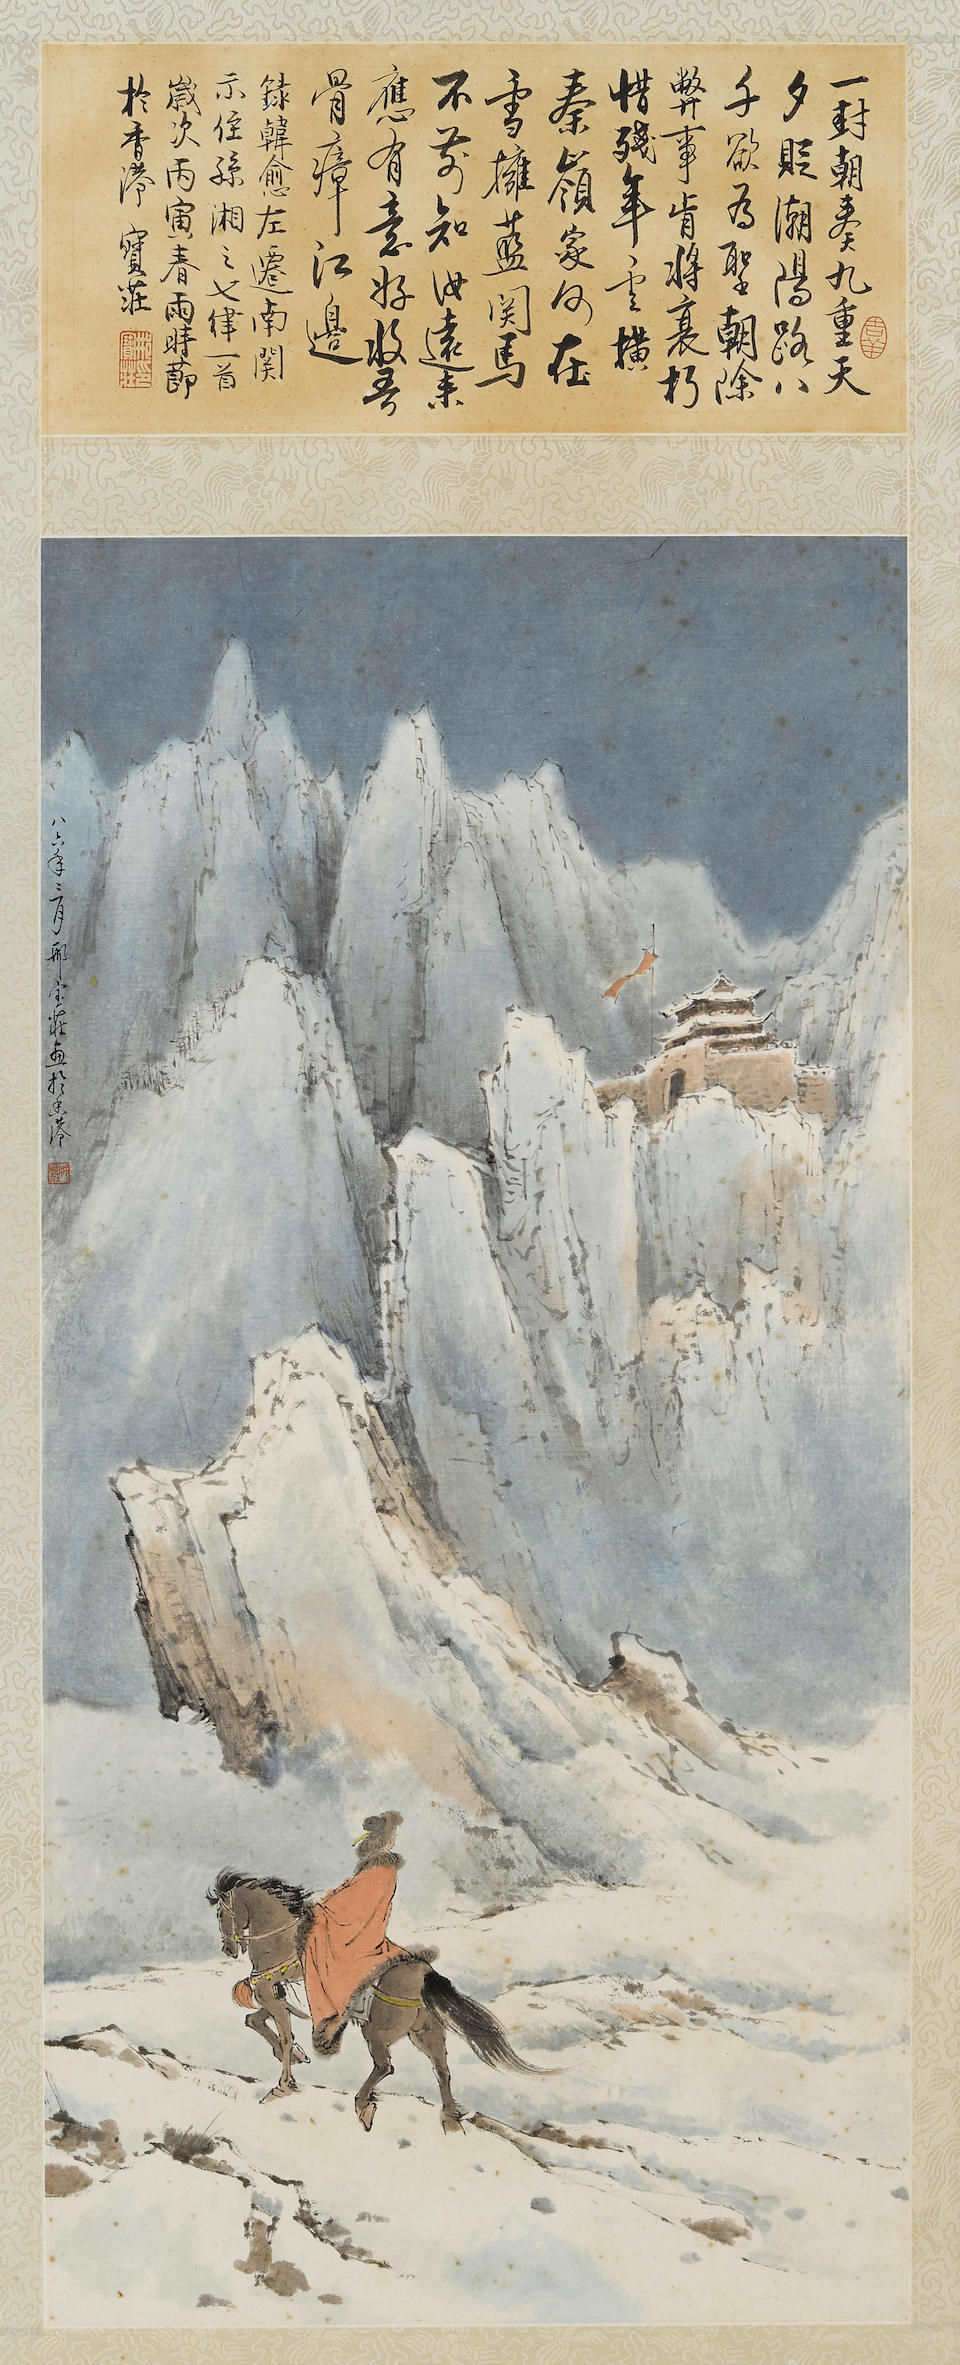 Xing Baozhuang (Ying Po Chong, b. 1940)  Landscapes after Tang Poems, 1986